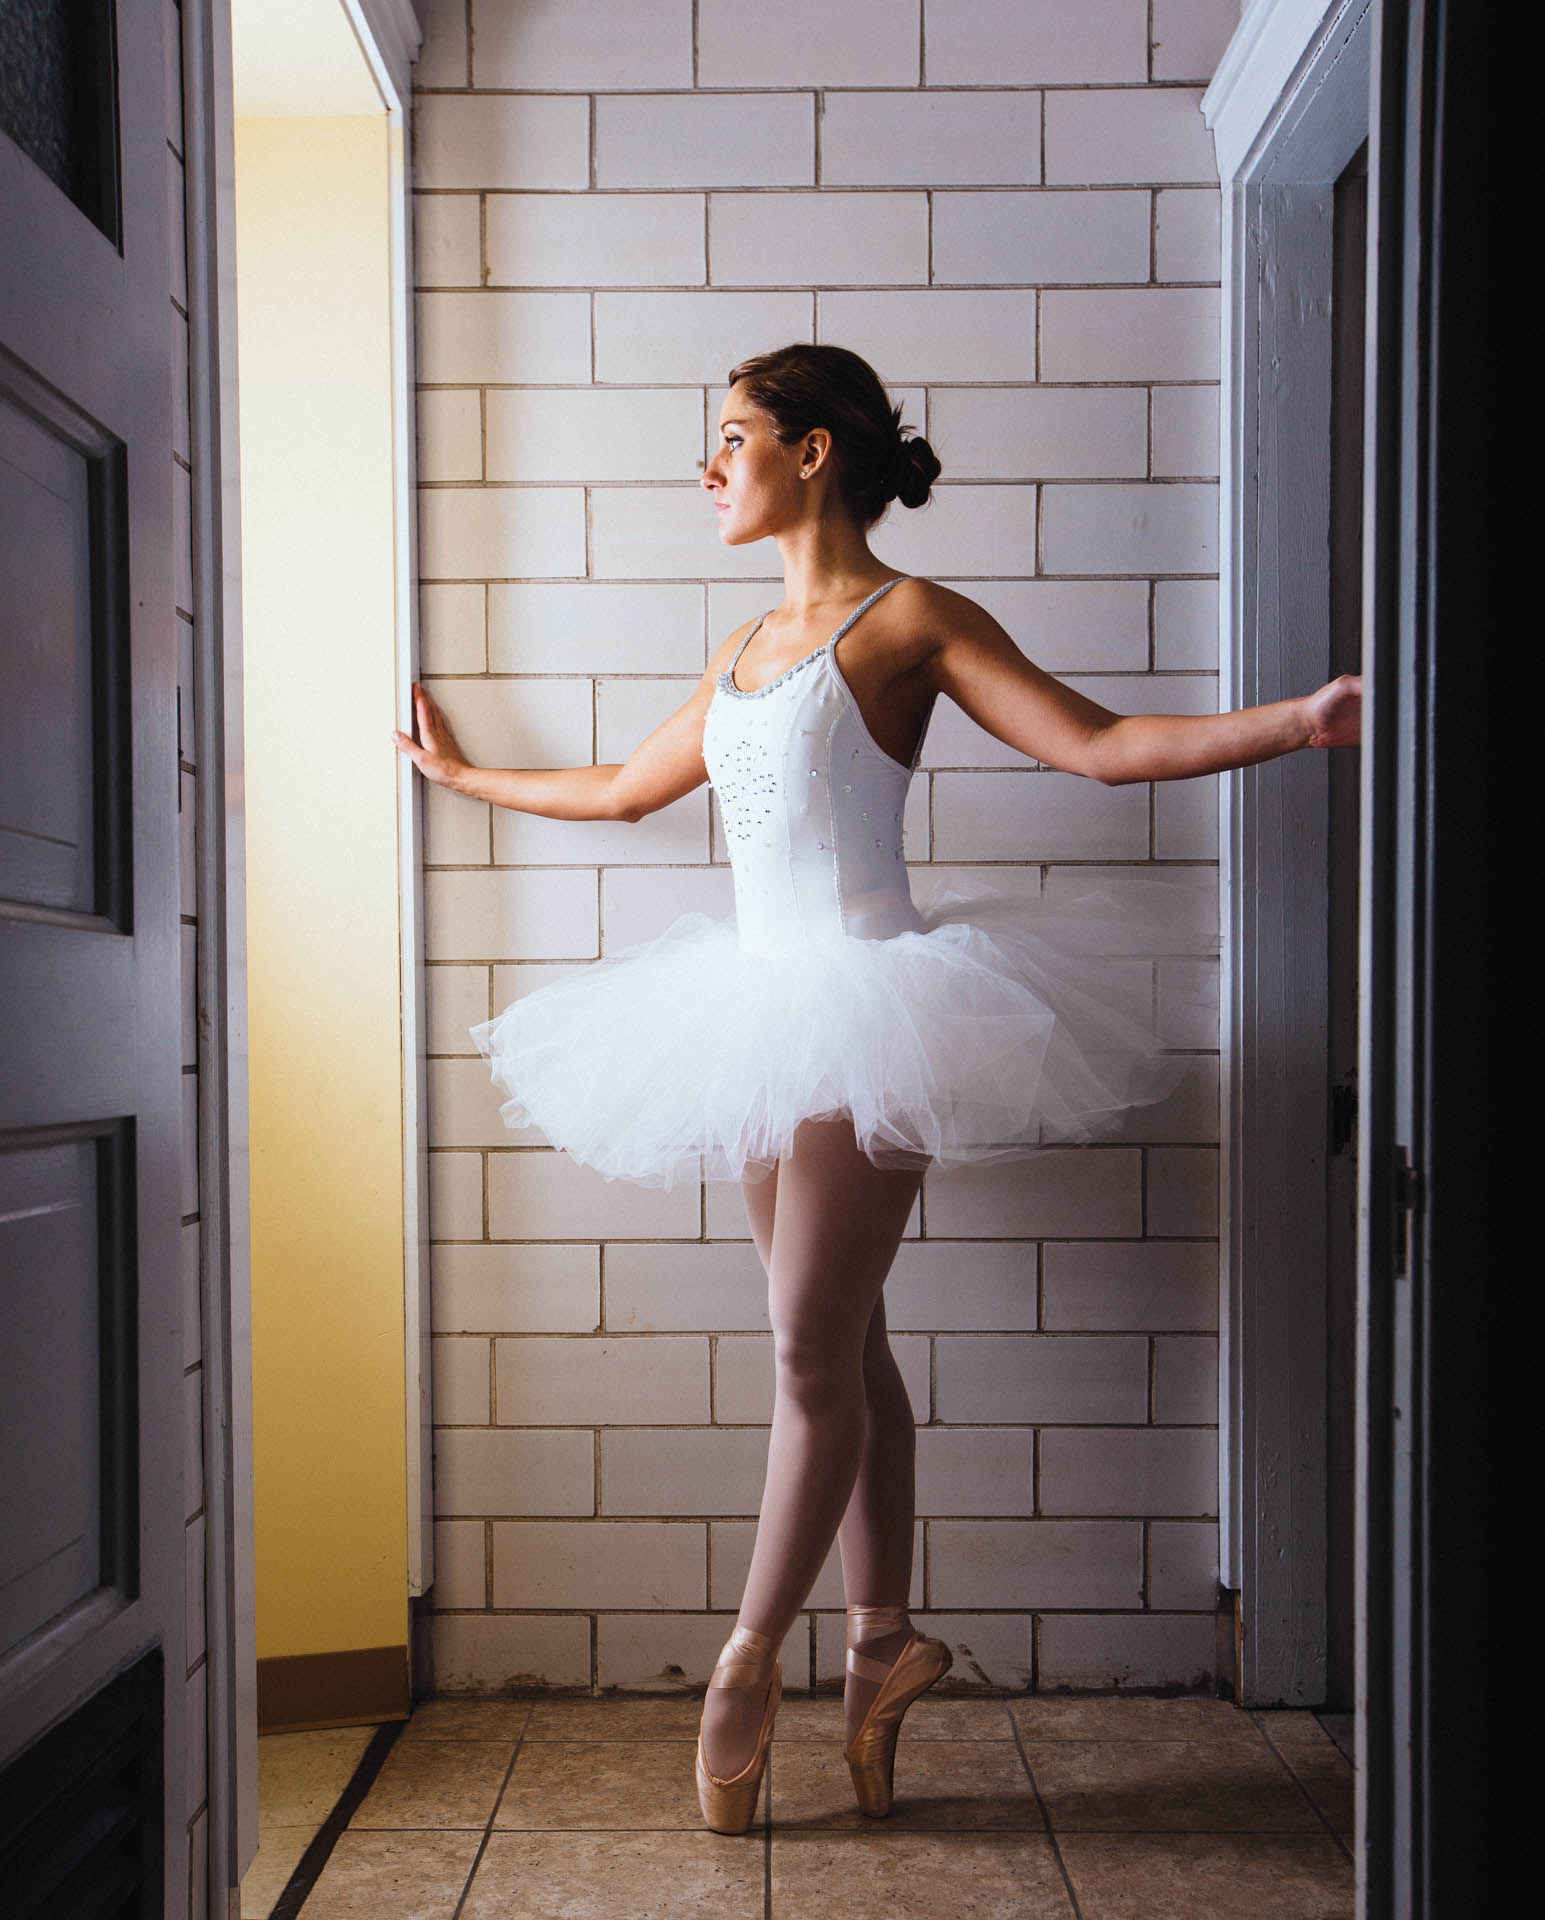 shannon-ballerina-on-pointe-white-tutu-gaze-0679